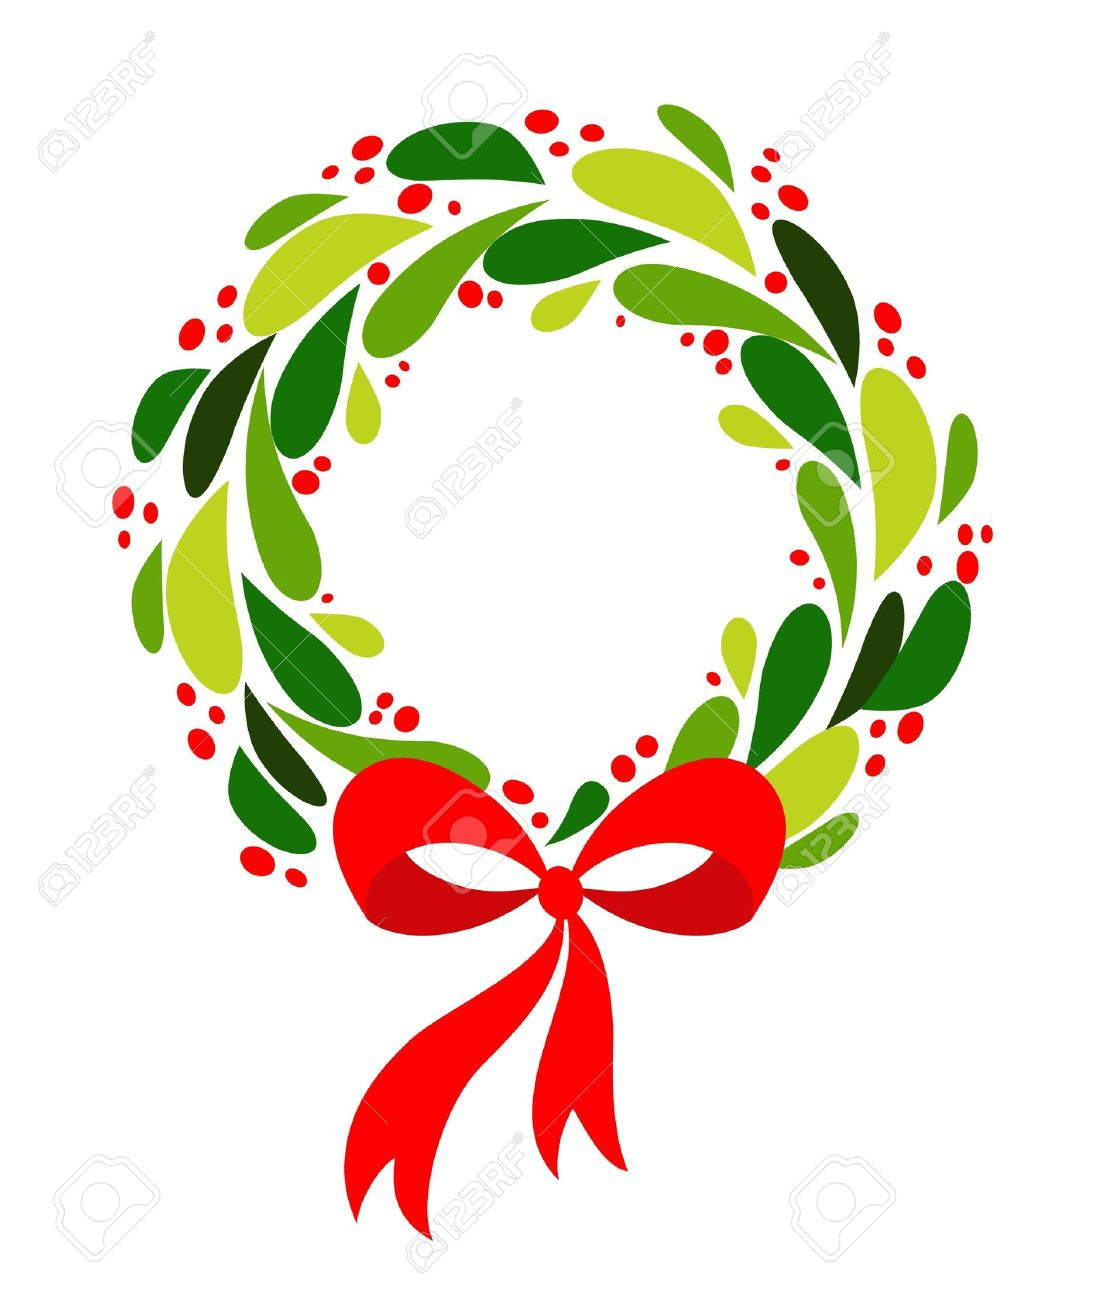 Christmas Wreath Clipart.Christmas Wreath With Red Bow